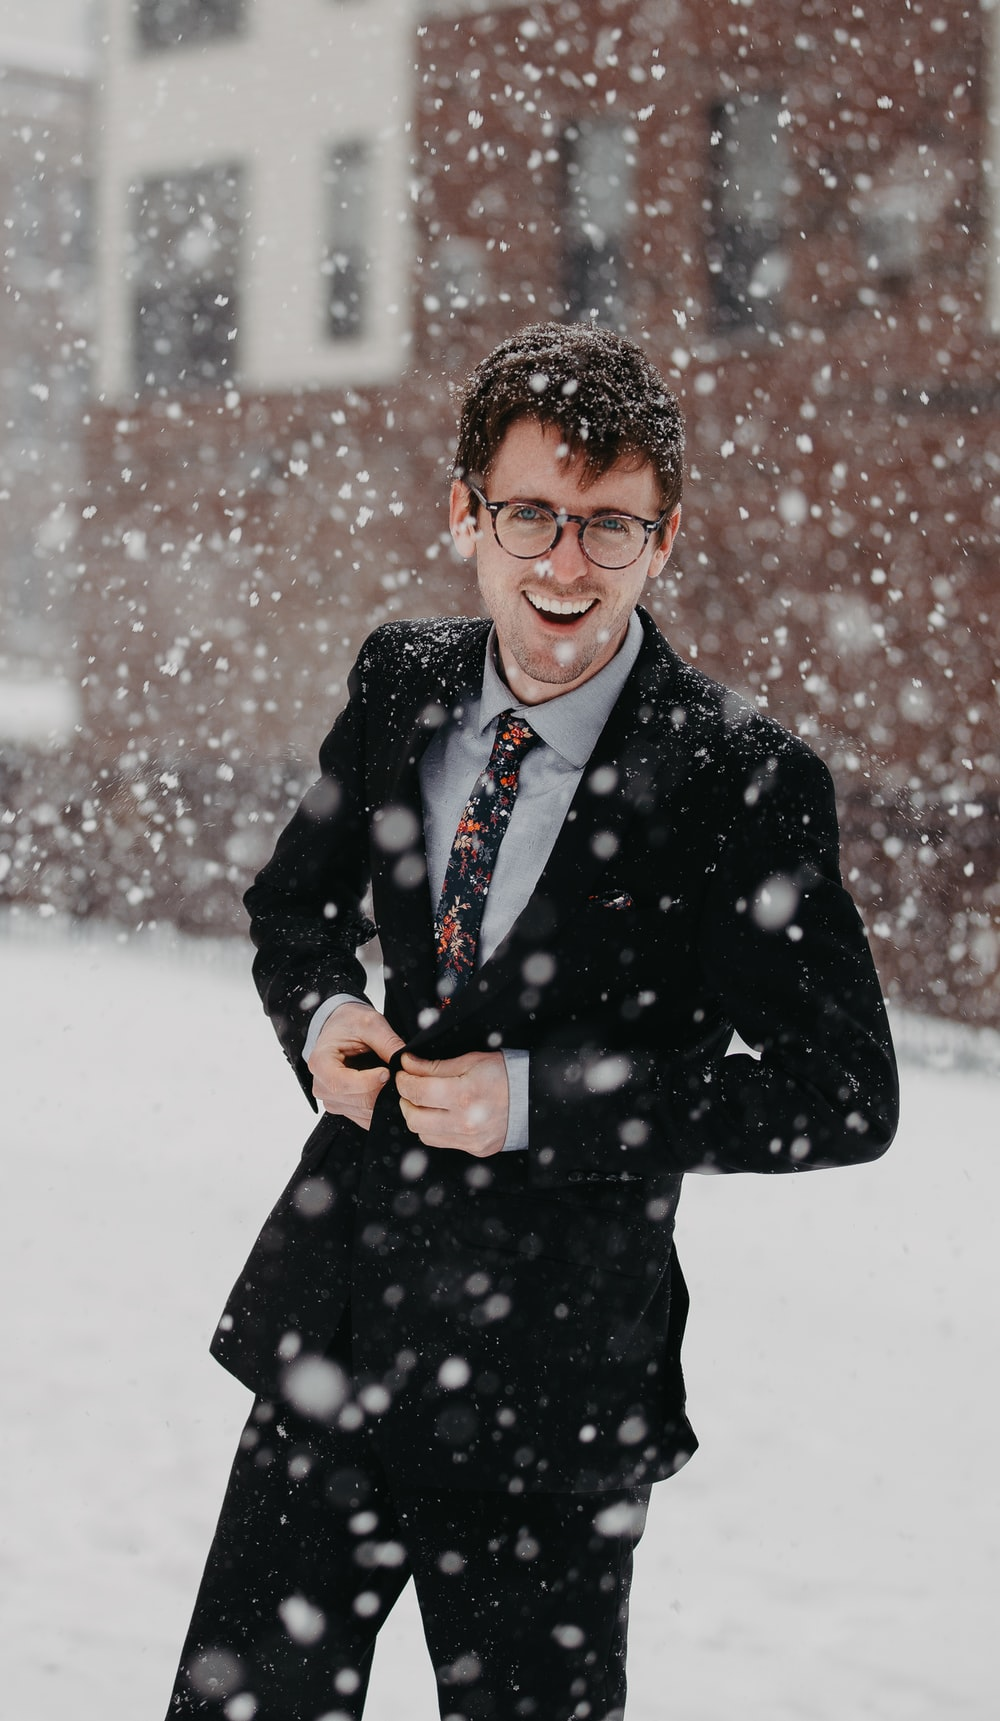 man wearing black suit under snow